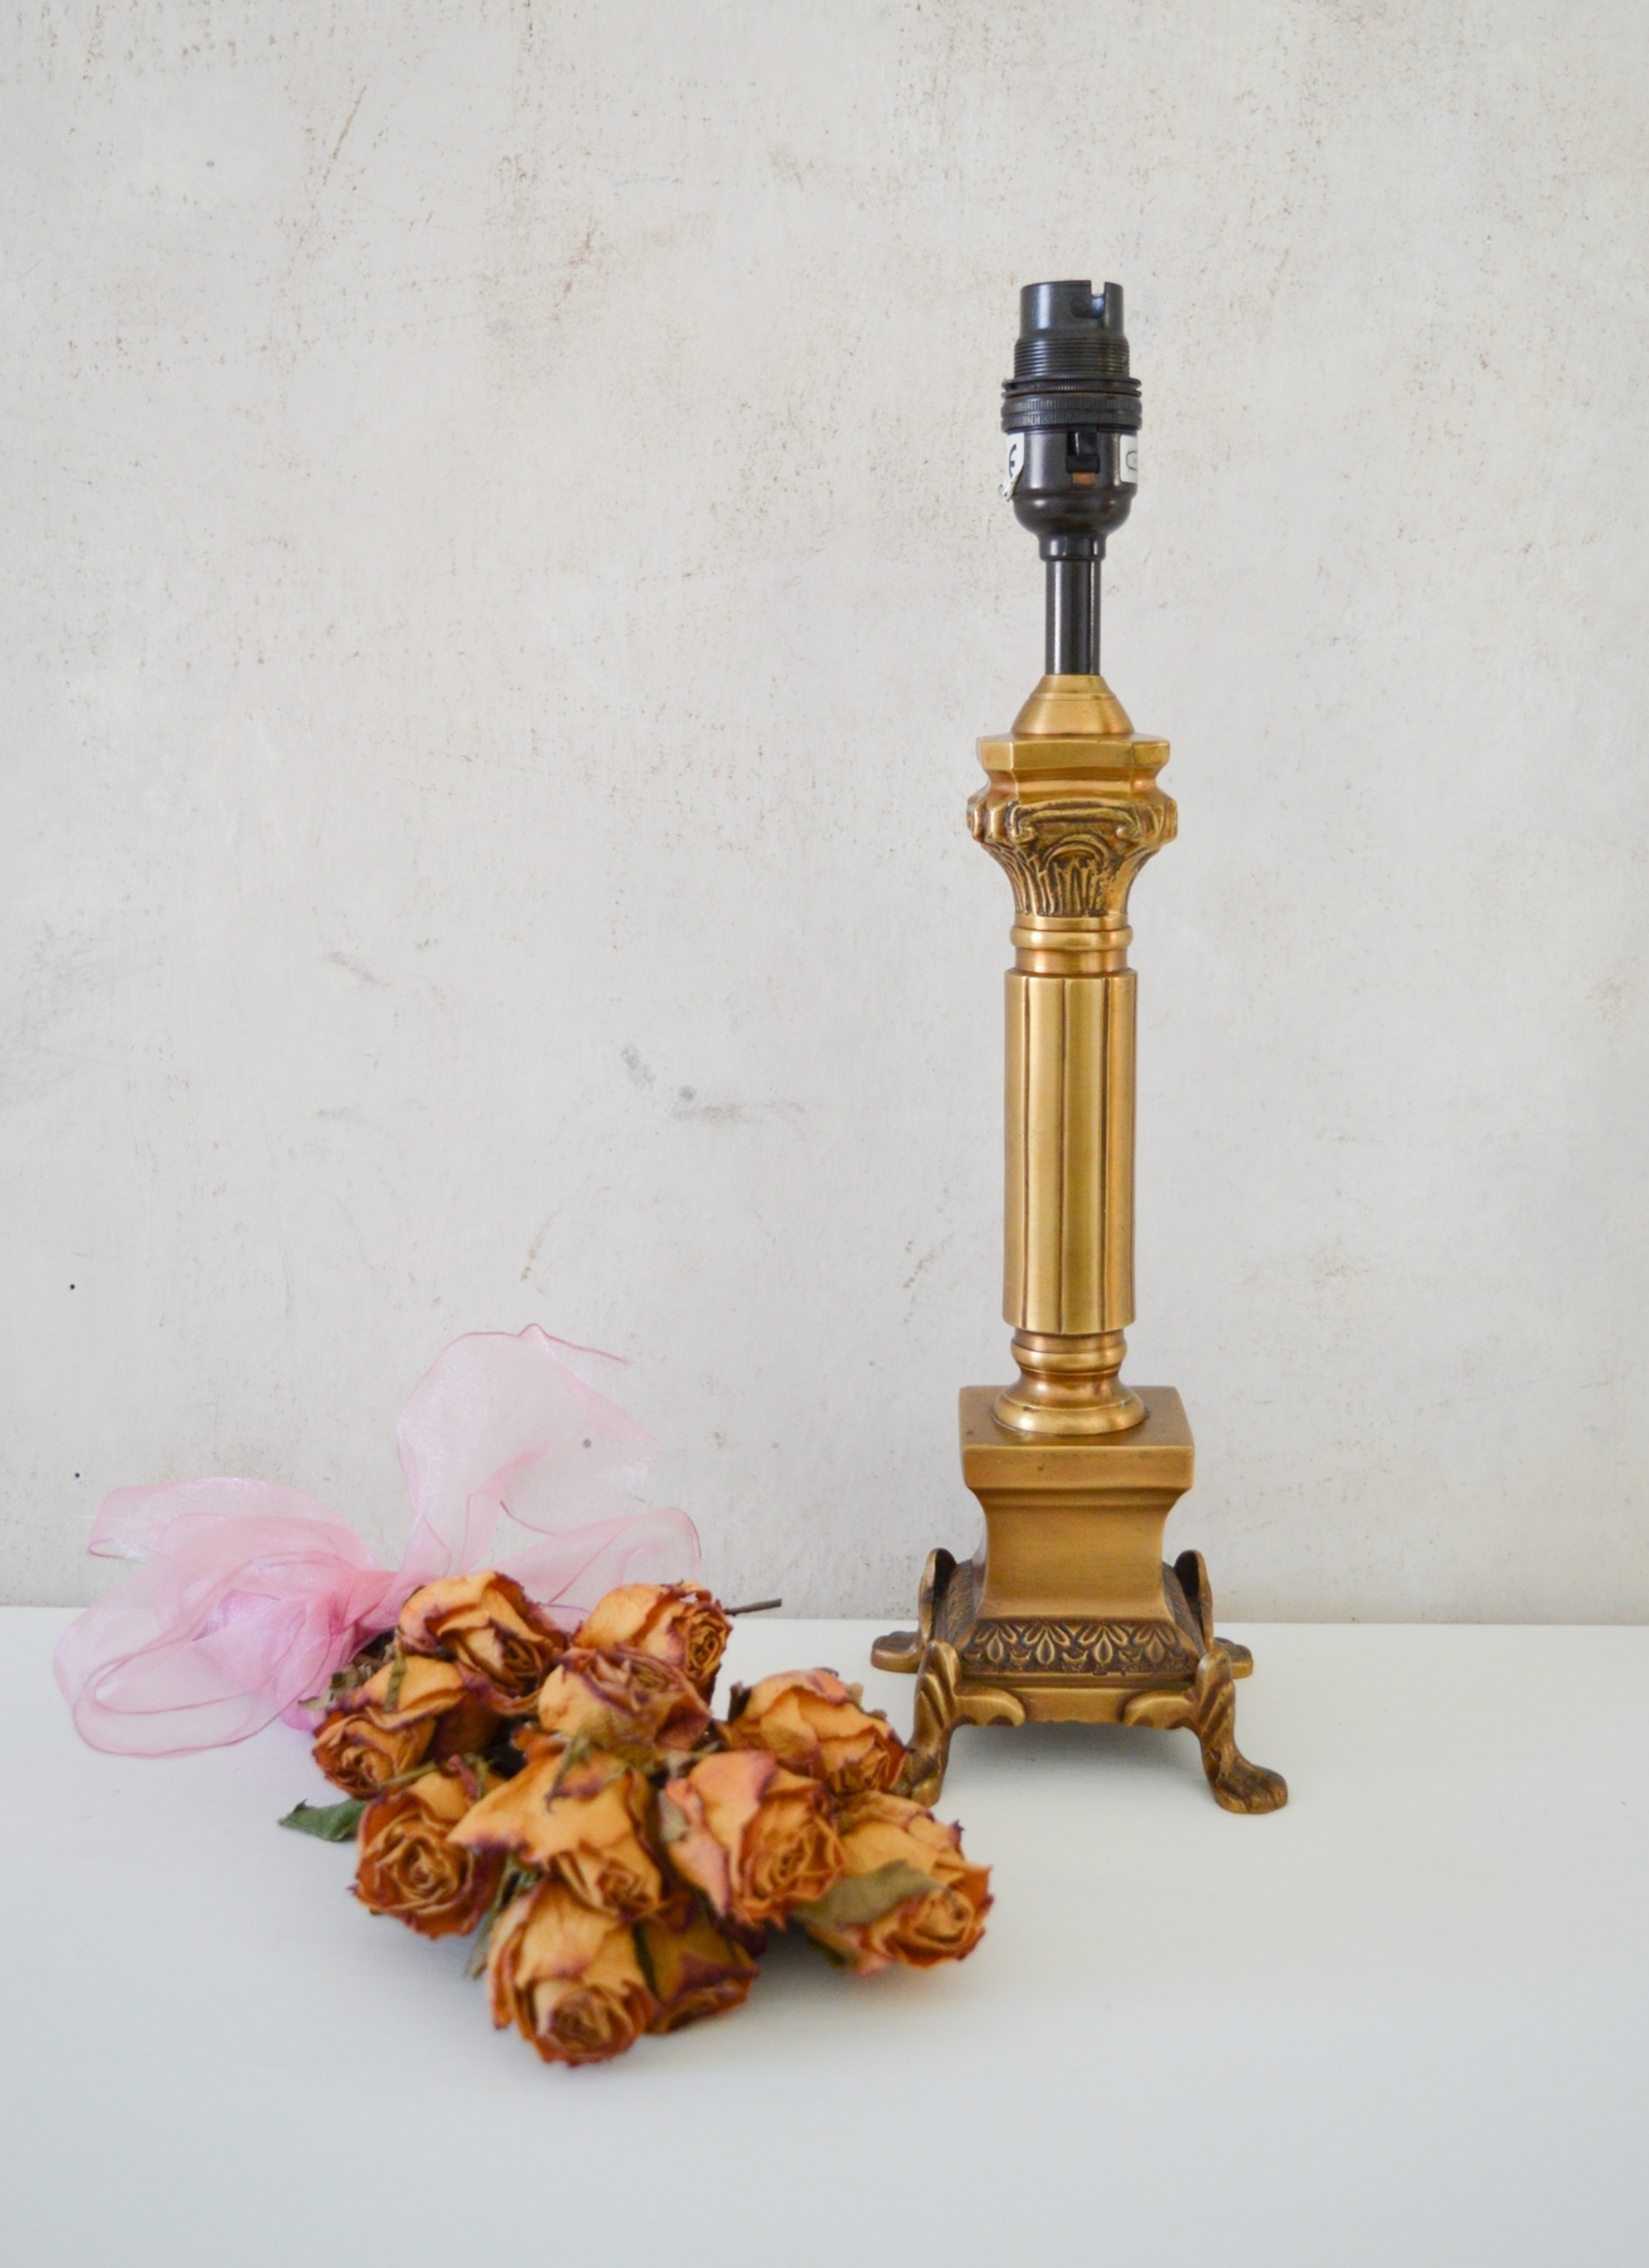 Antique Brass Table Lamp Base With Claw Feet Corinthian Brass Column Bedside Table Lamp Art Deco Vintage Solid Brass Gentlemen S Club Vinterior